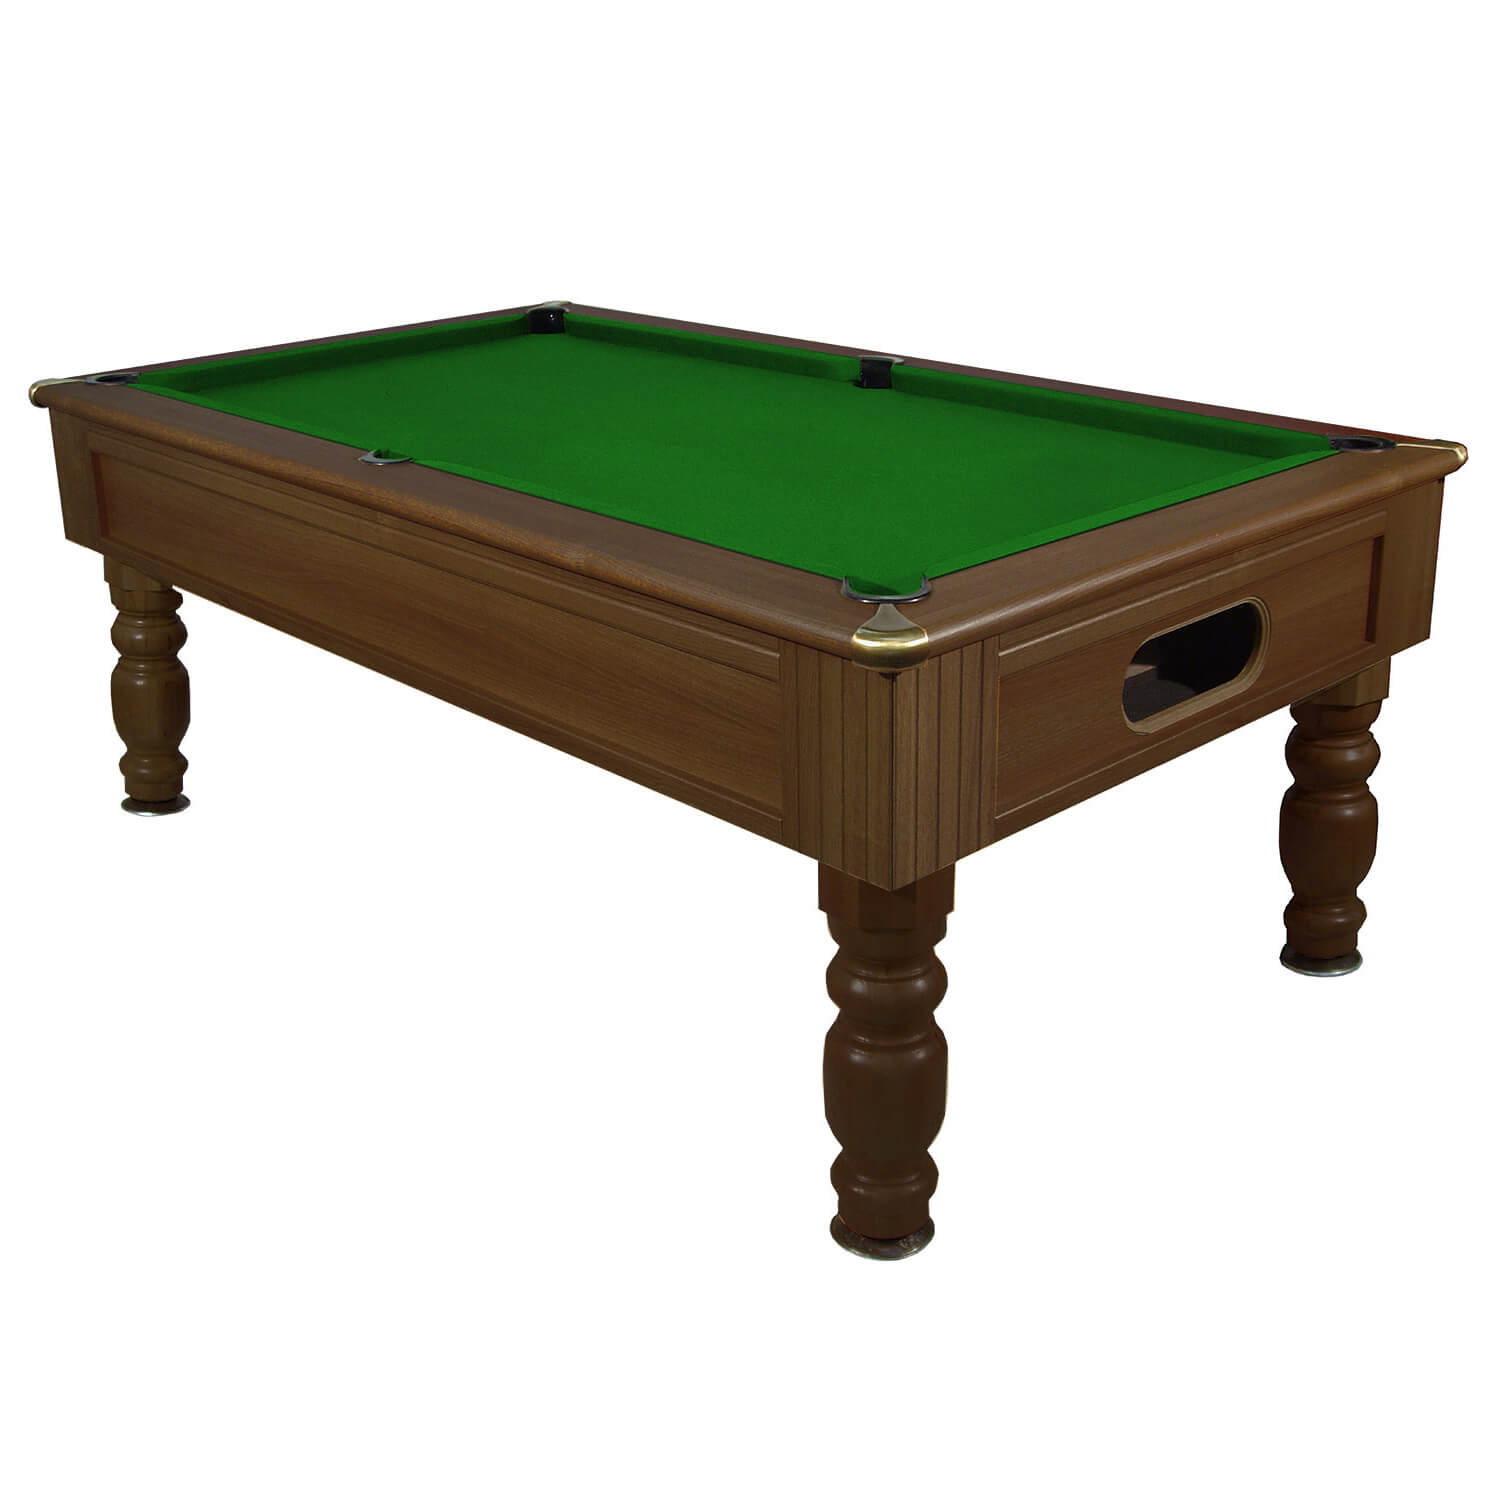 Monaco Pool Table Ft Ft Liberty Games - English pool table